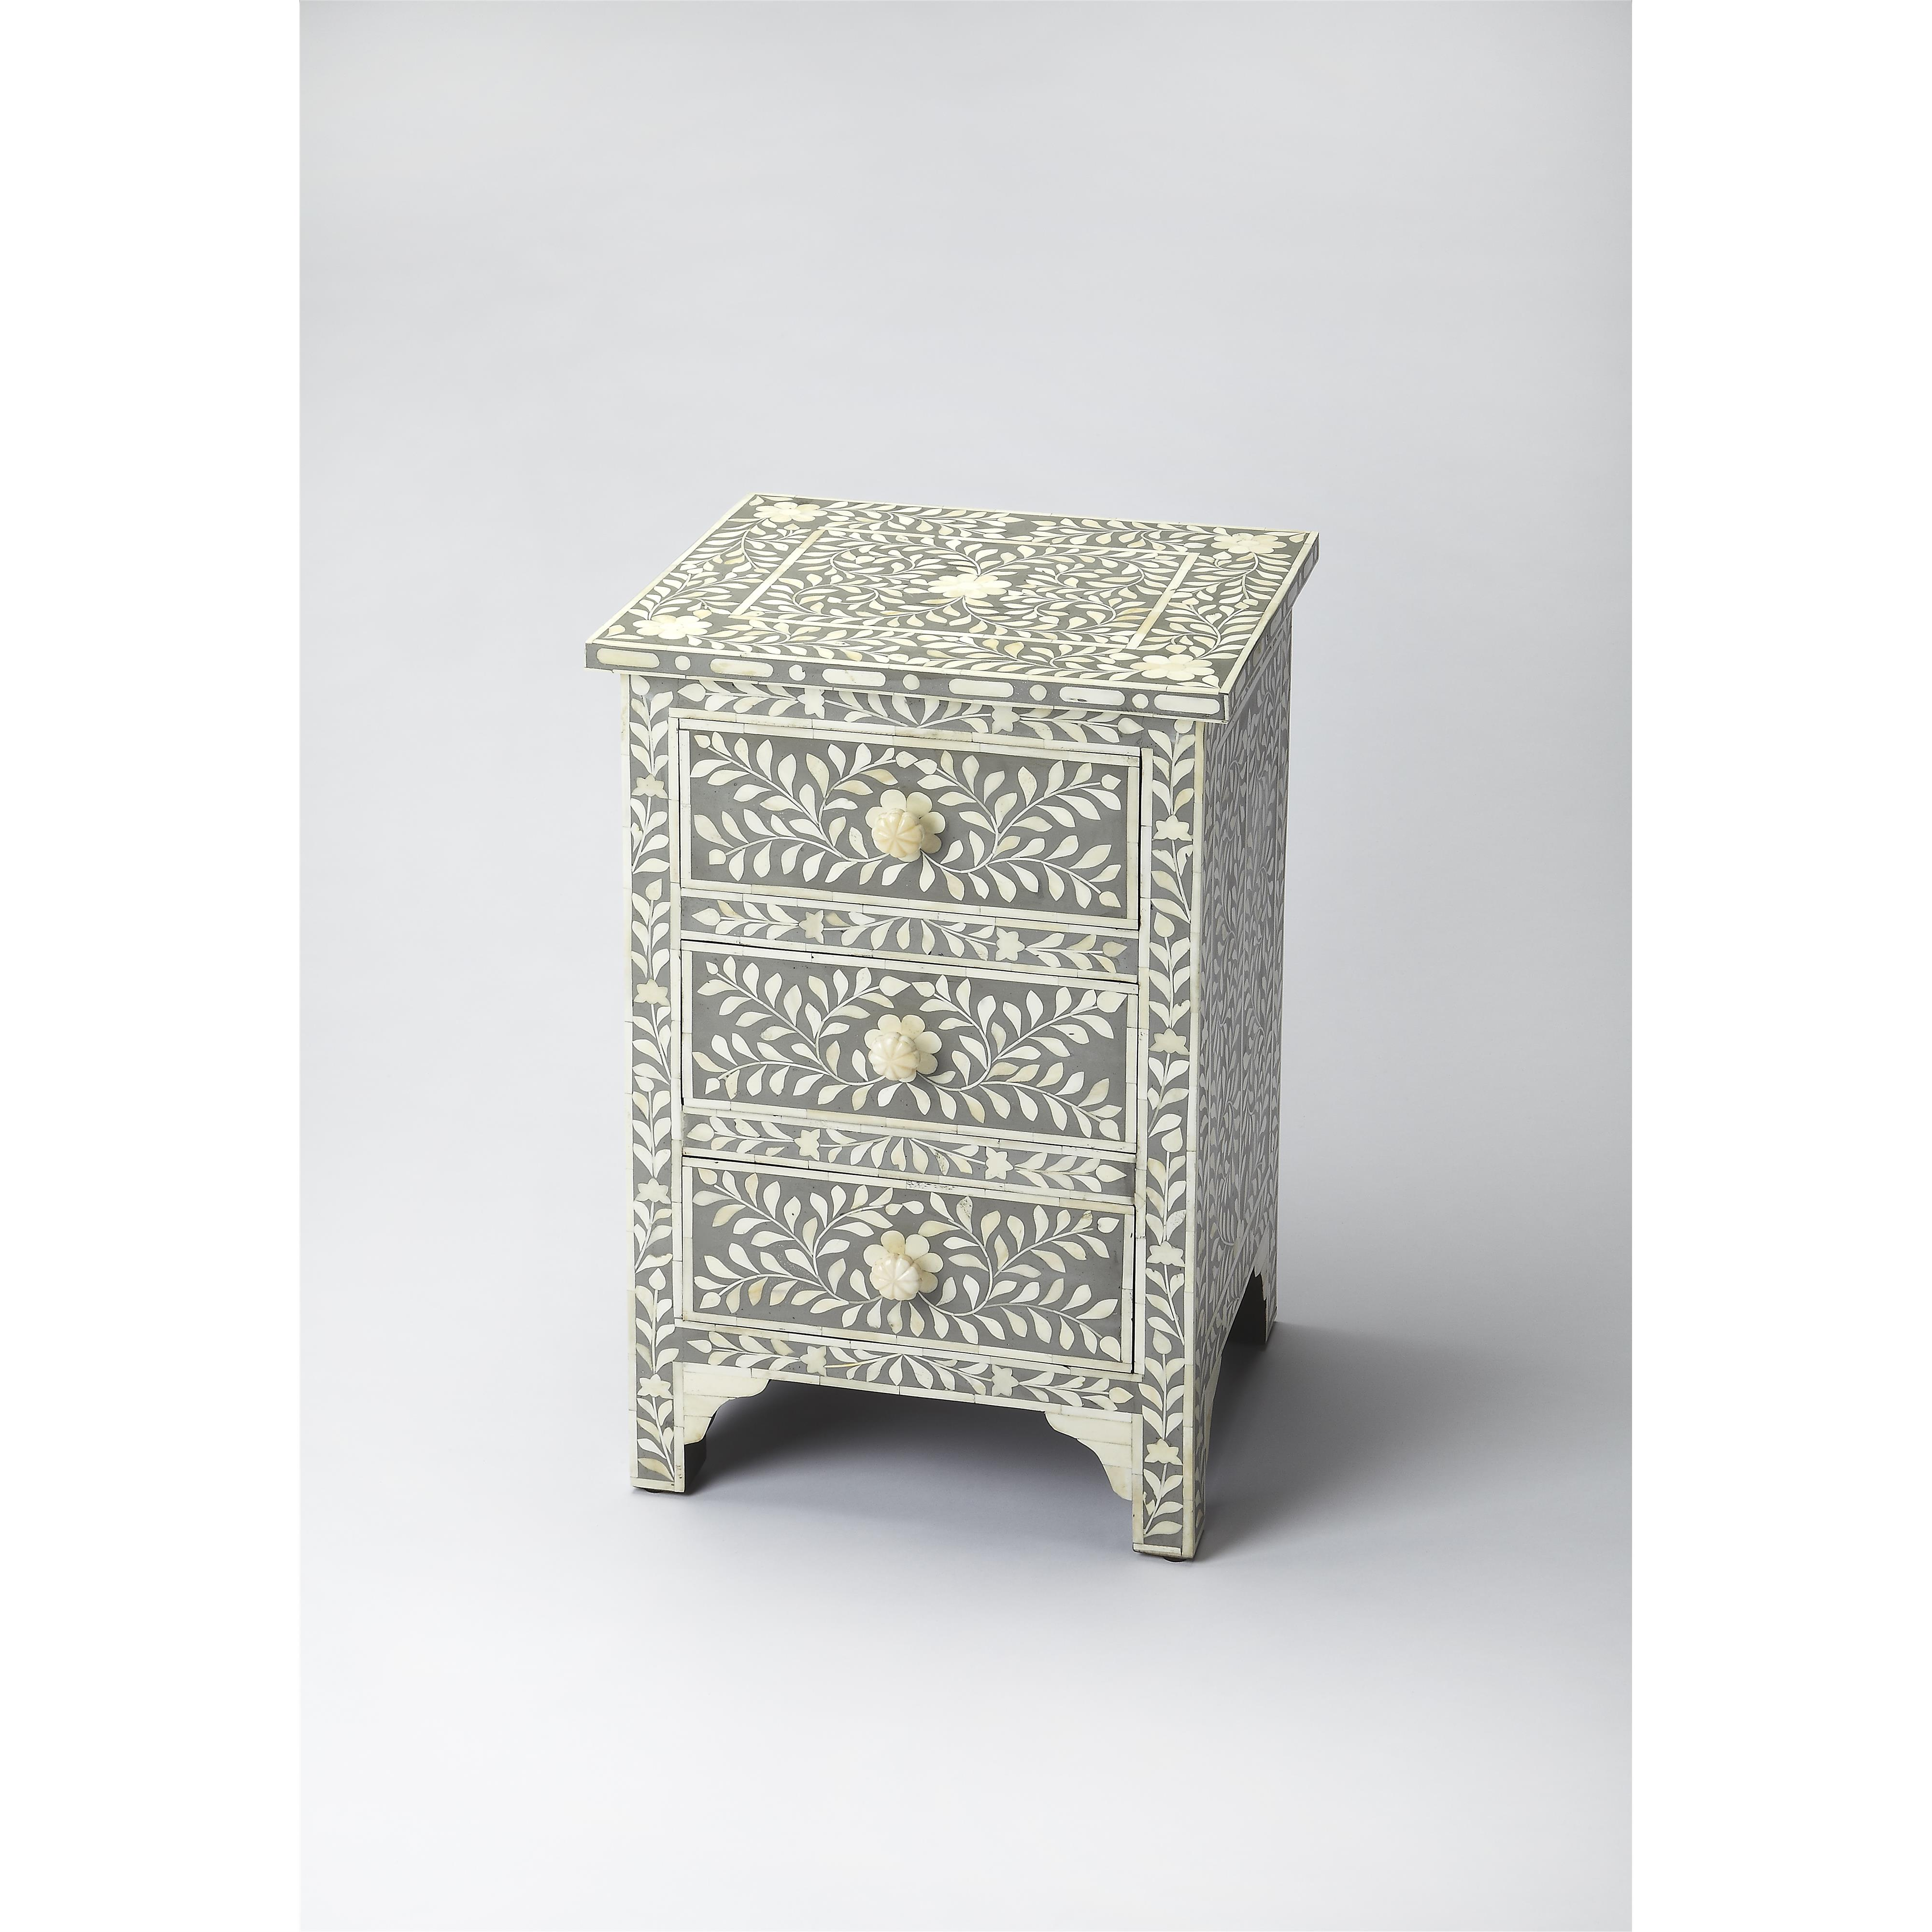 Butler Specialty Company Bone Inlay Accent Chest - Item Number: 3202321